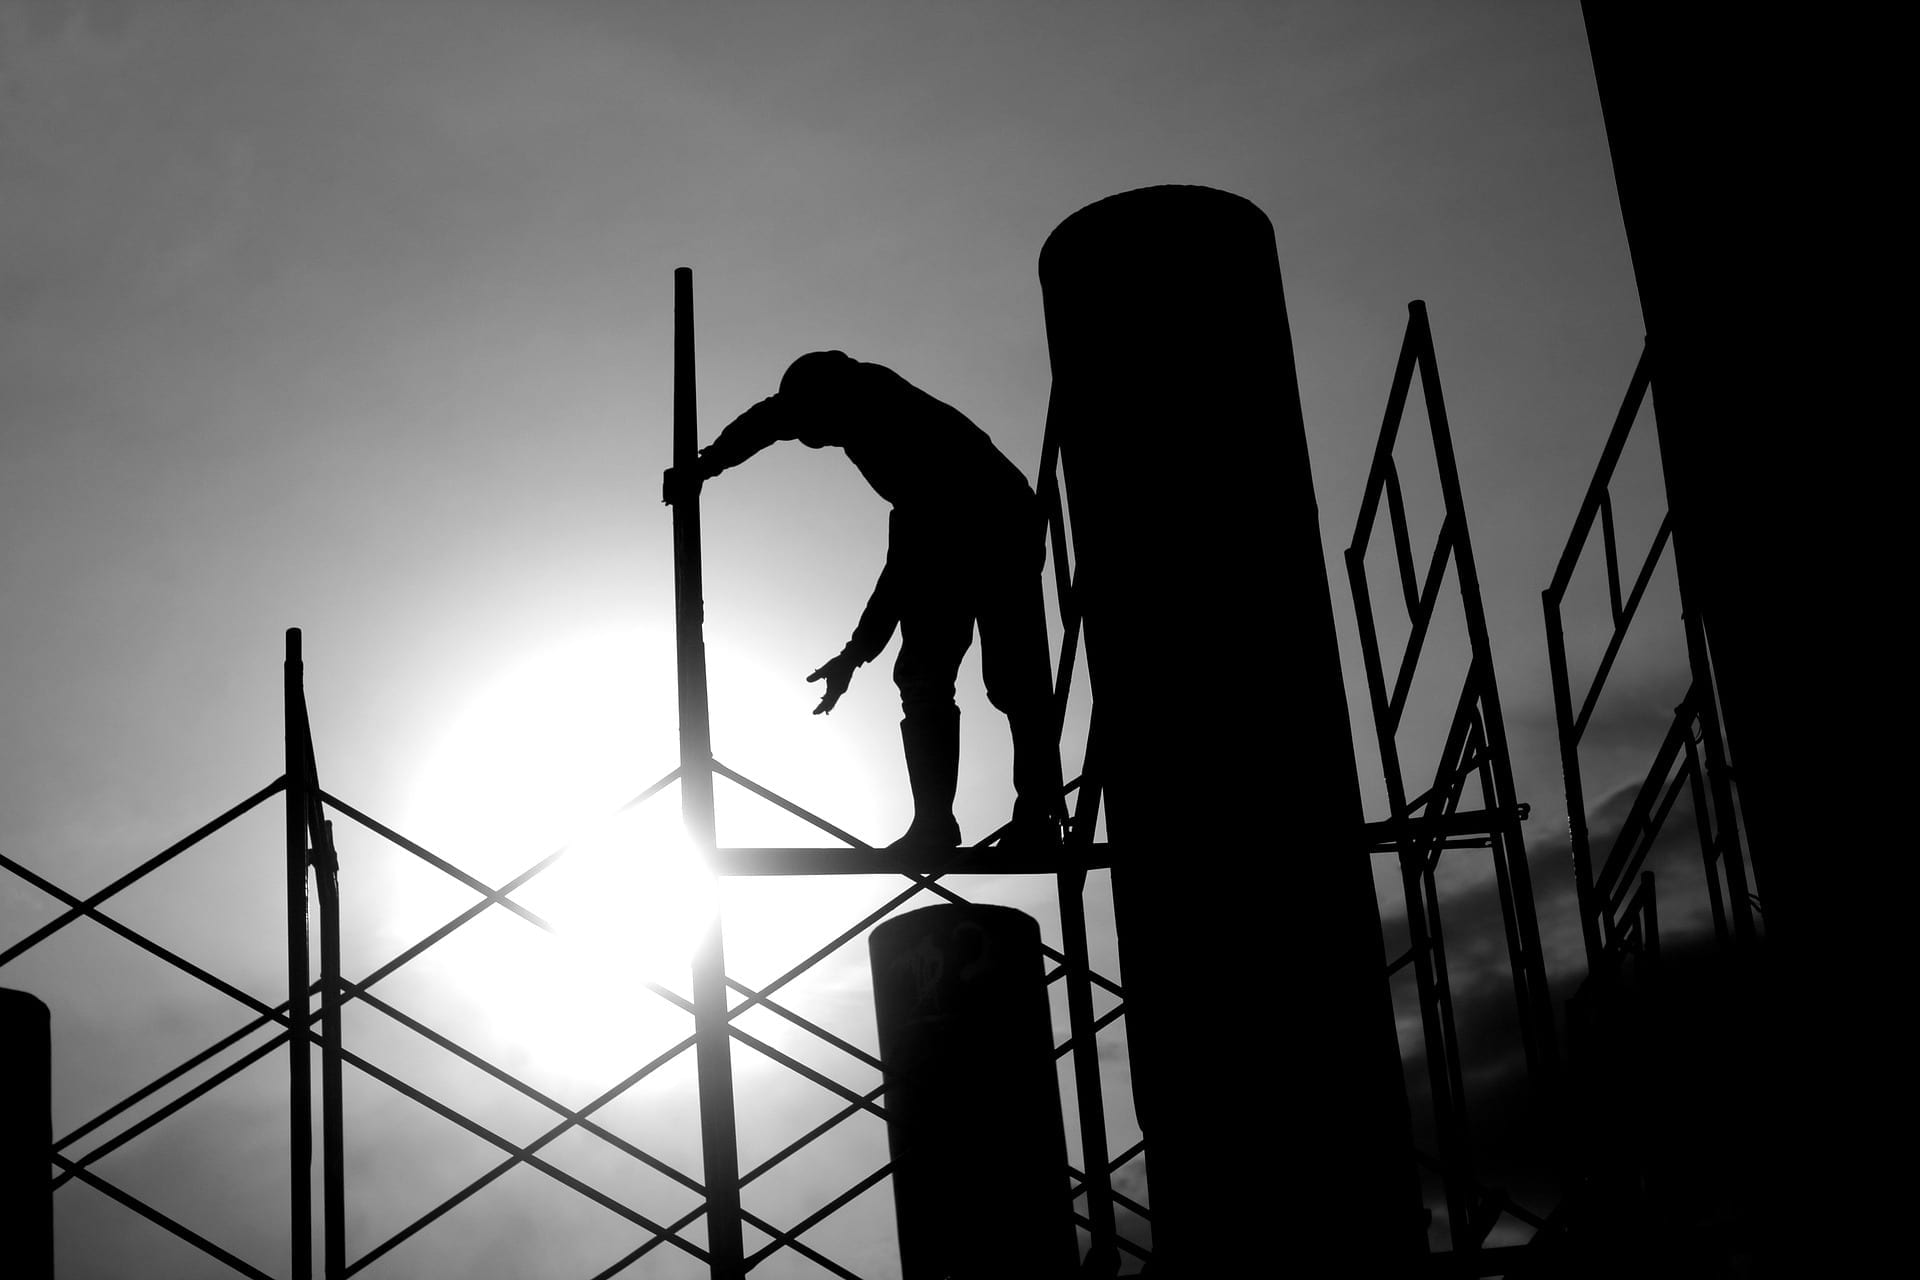 silhouette of construction worker on a scaffold